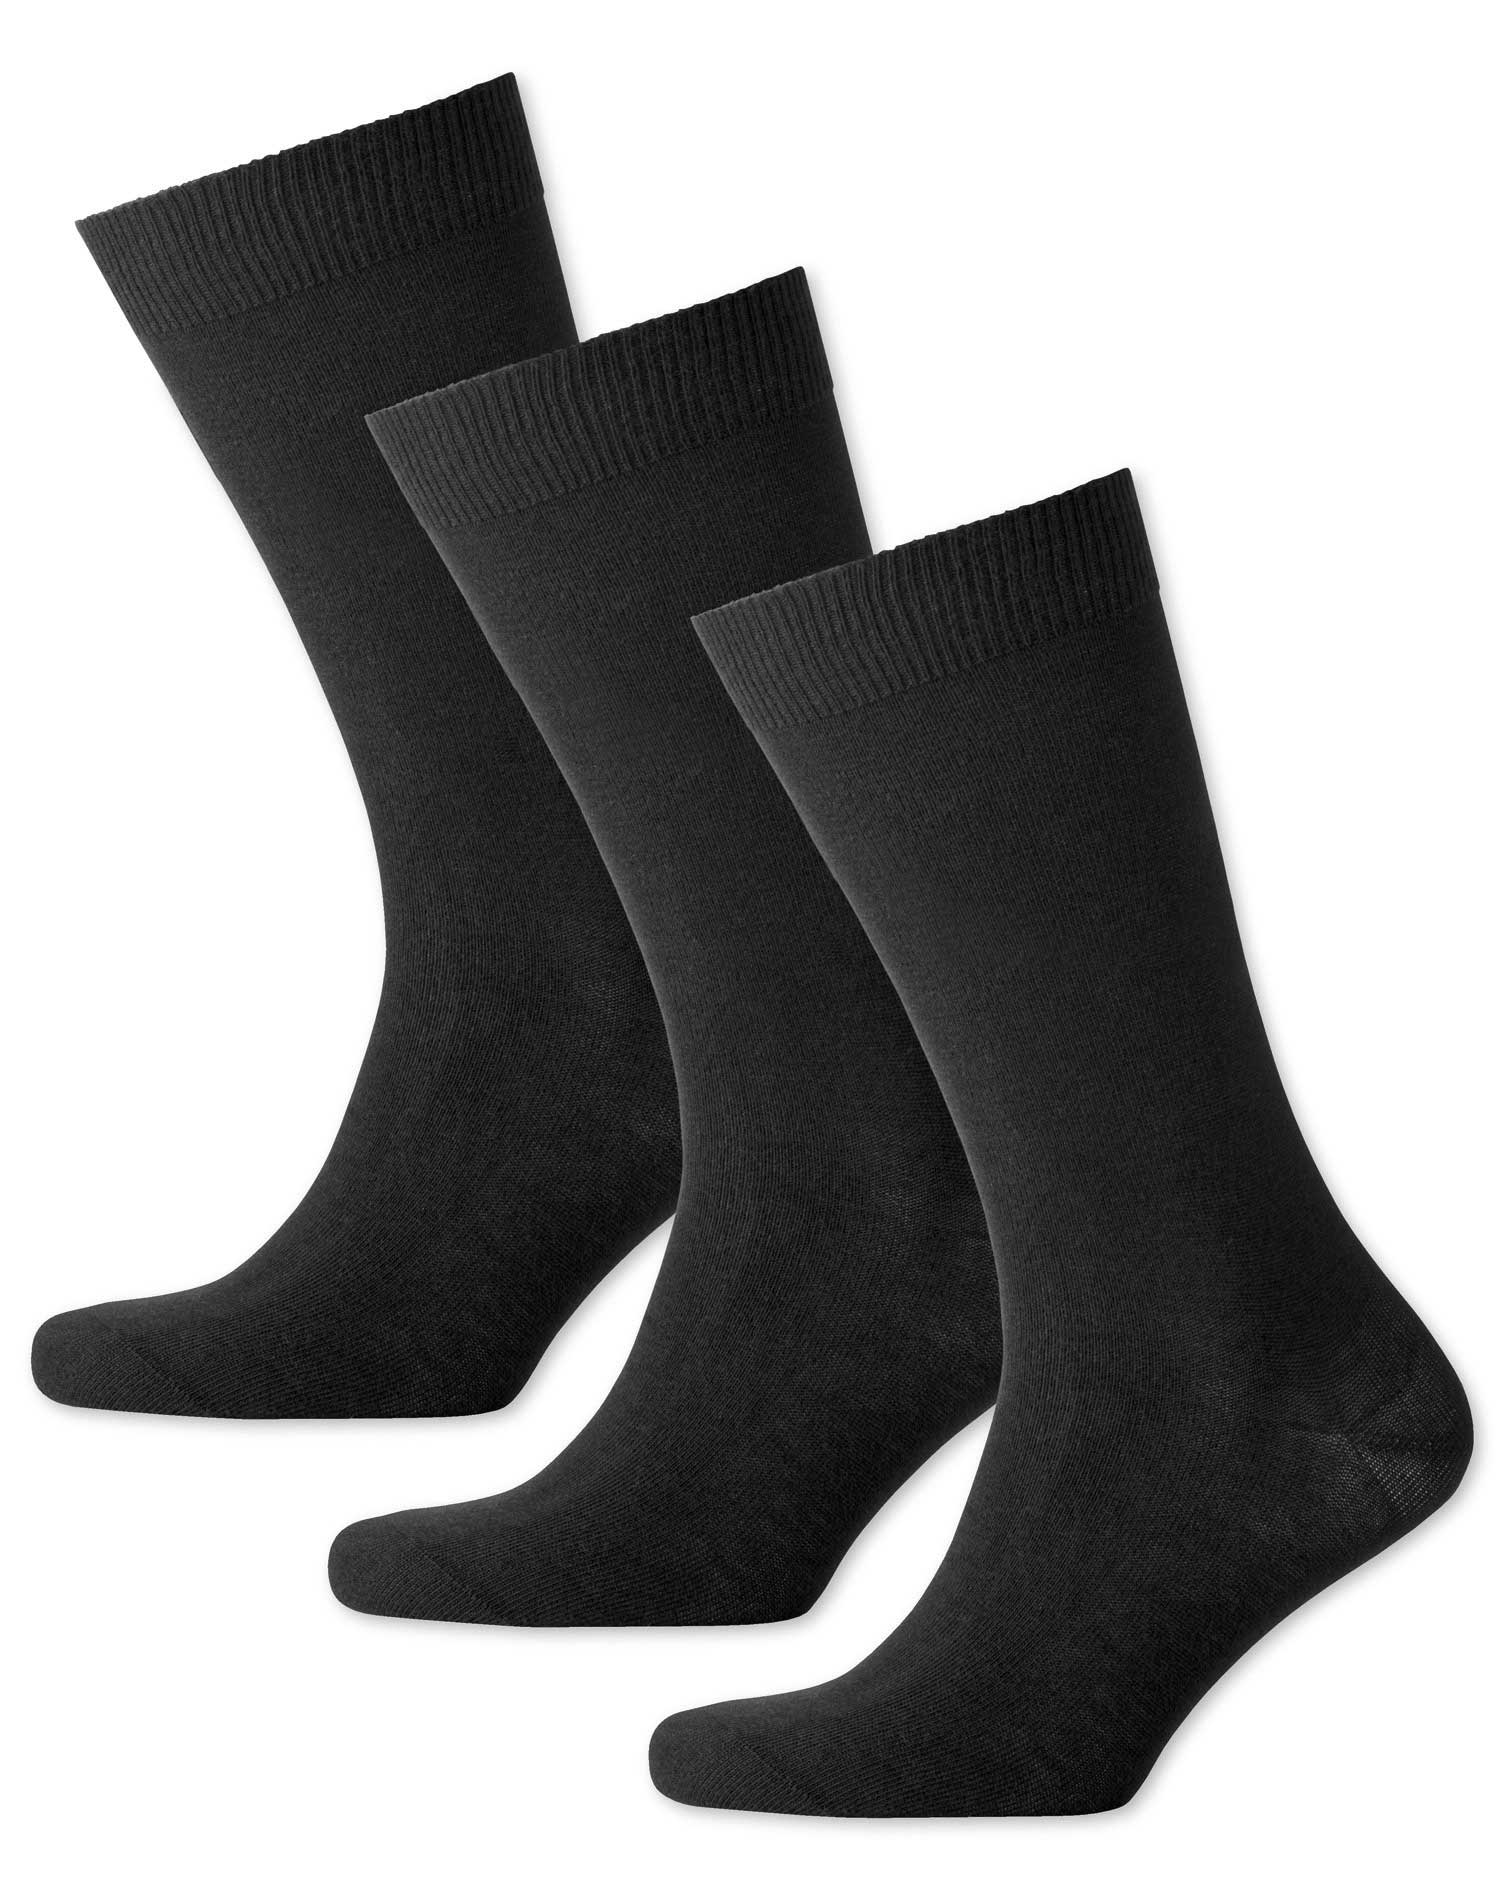 Black Cotton Rich 3 Pack Socks Size Large by Charles Tyrwhitt